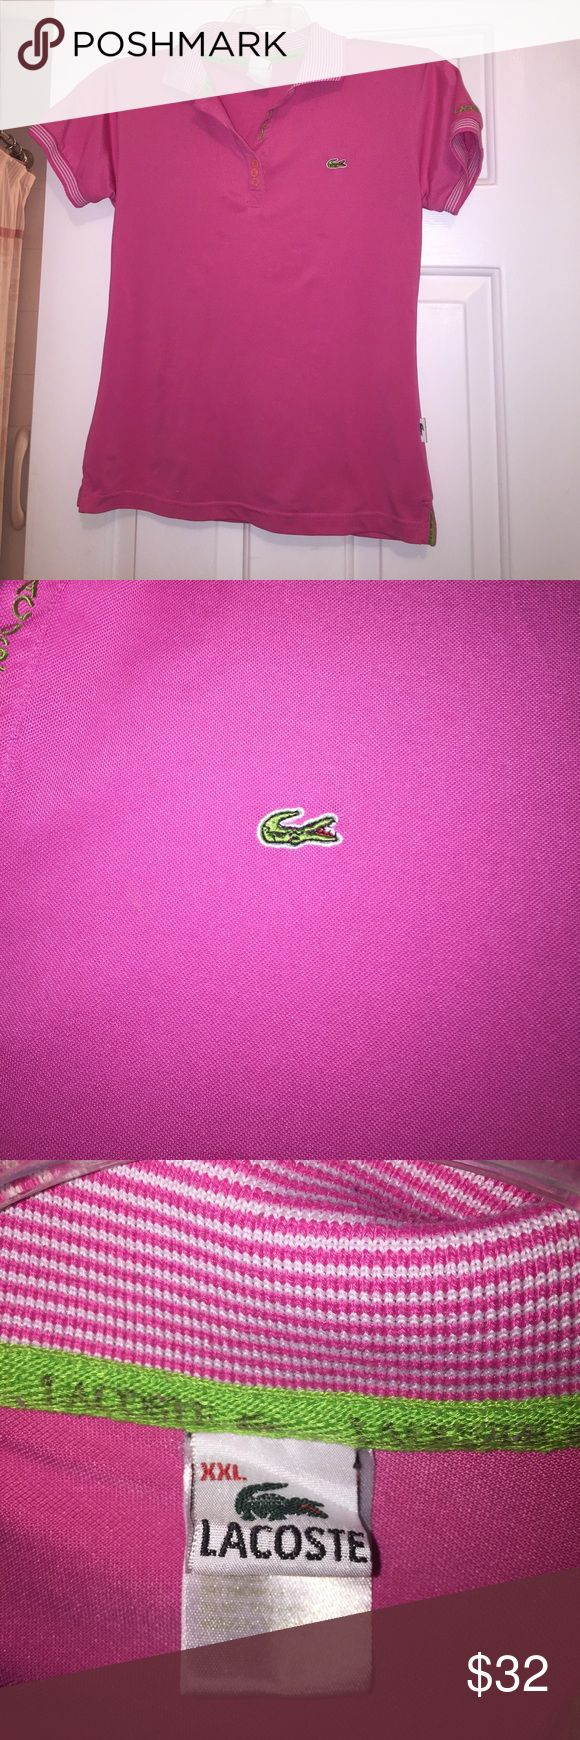 Short sleeve pink polo shirt 🌷 🌷slightly fitted hot pink polo shirt 🌷 striped collar and at the end of short sleeves 🌷 Lacoste Tops